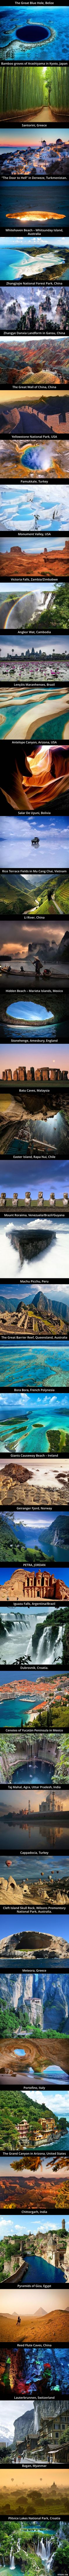 45 Stunning Places Around The World